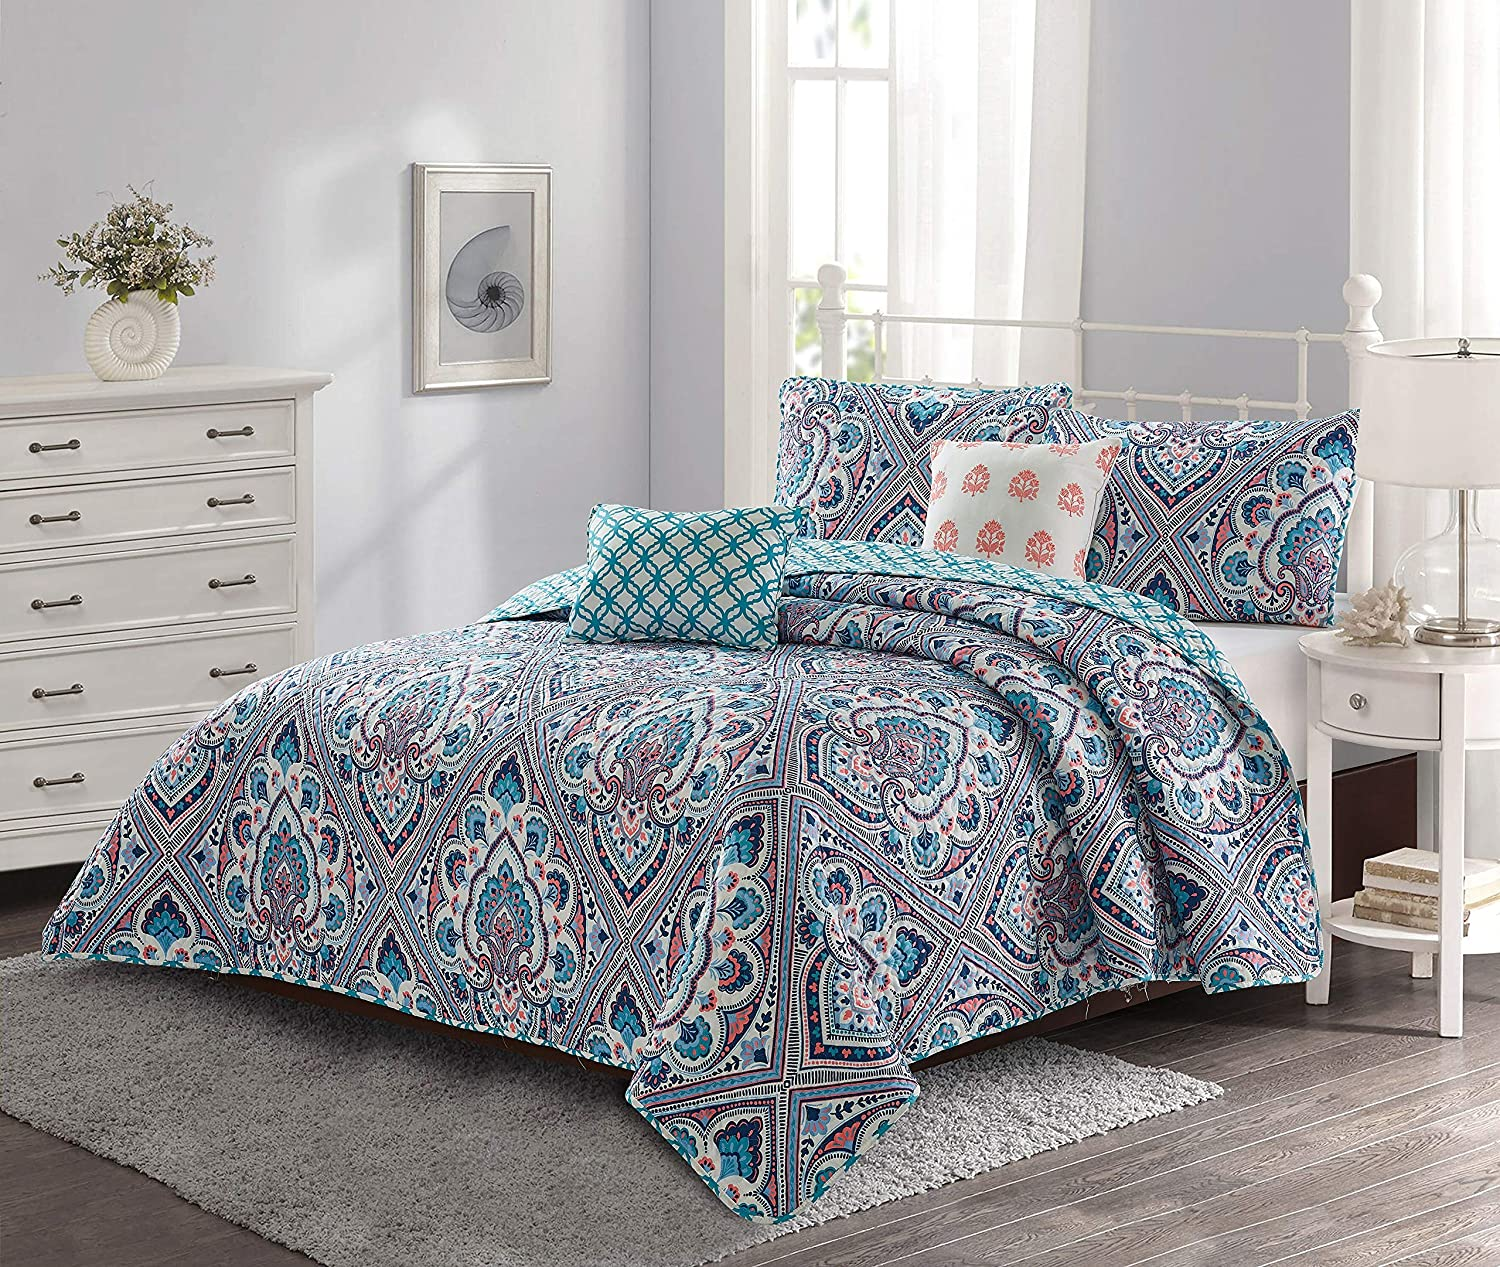 Go-U Set Universal Home Fashions Quilt, Full/Queen, Blue Merriam